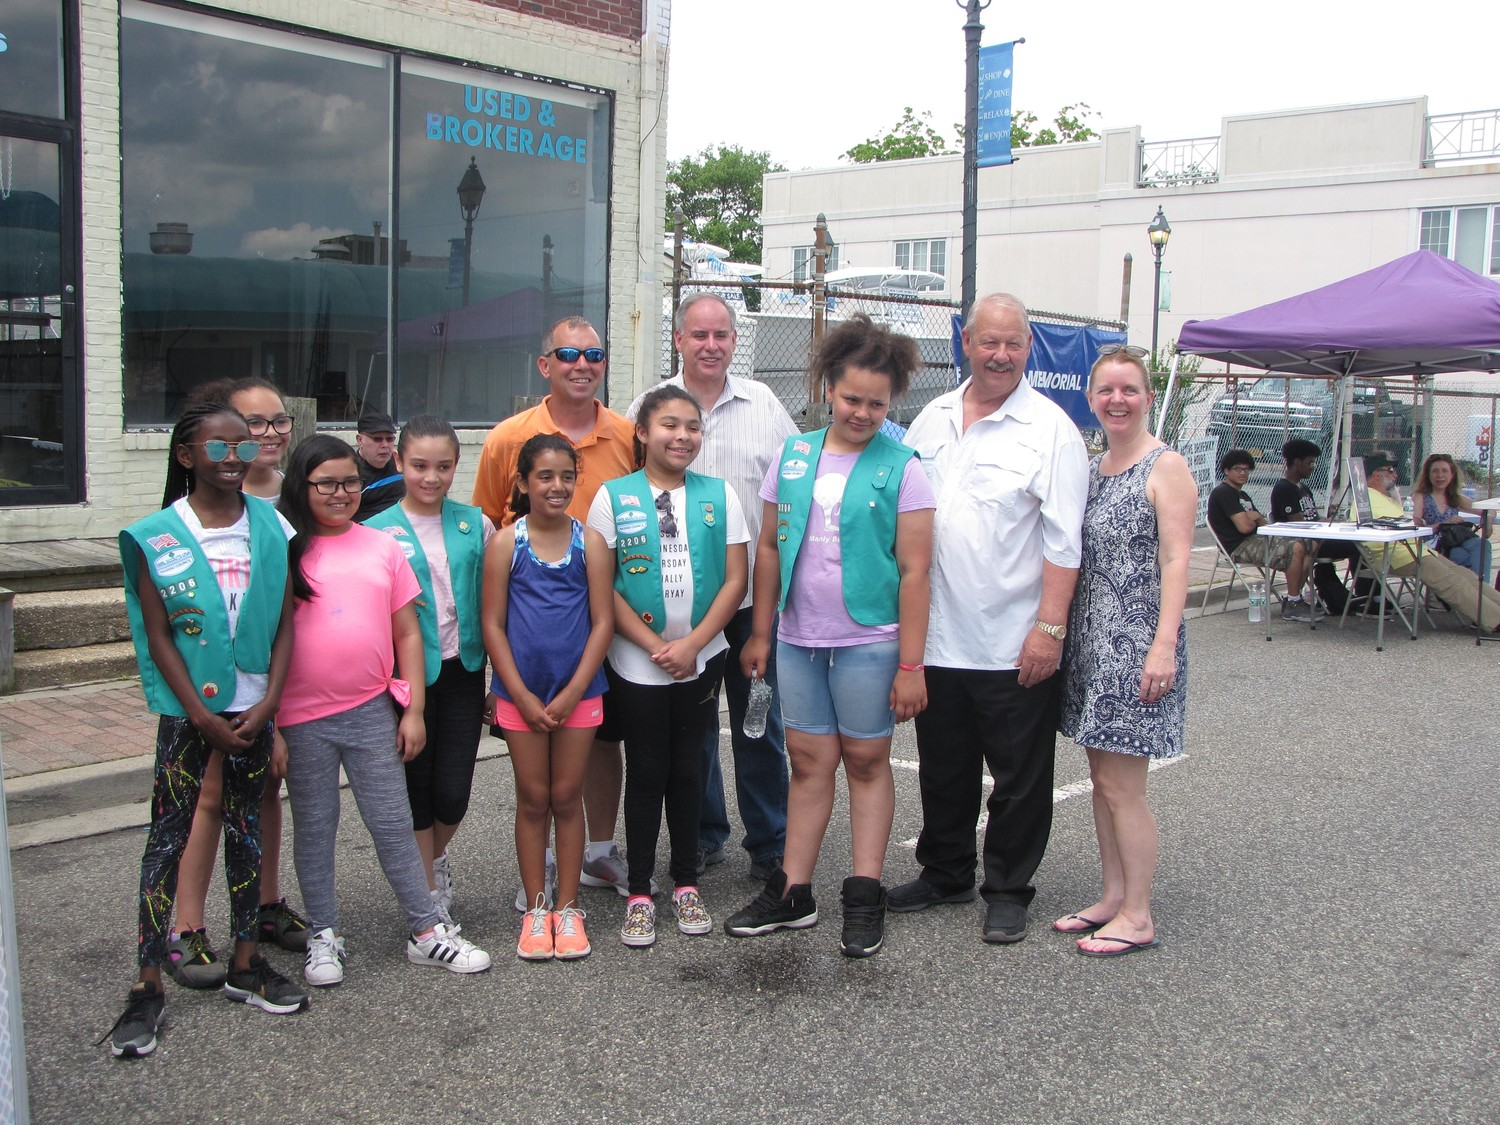 Mayor Kennedy, second from right, with Freeport Police Department Chief Miguel Bermudez, fourth from right, County Legislator Debra Mule, far right, and members of Freeport Girl Scout Troop 2206.